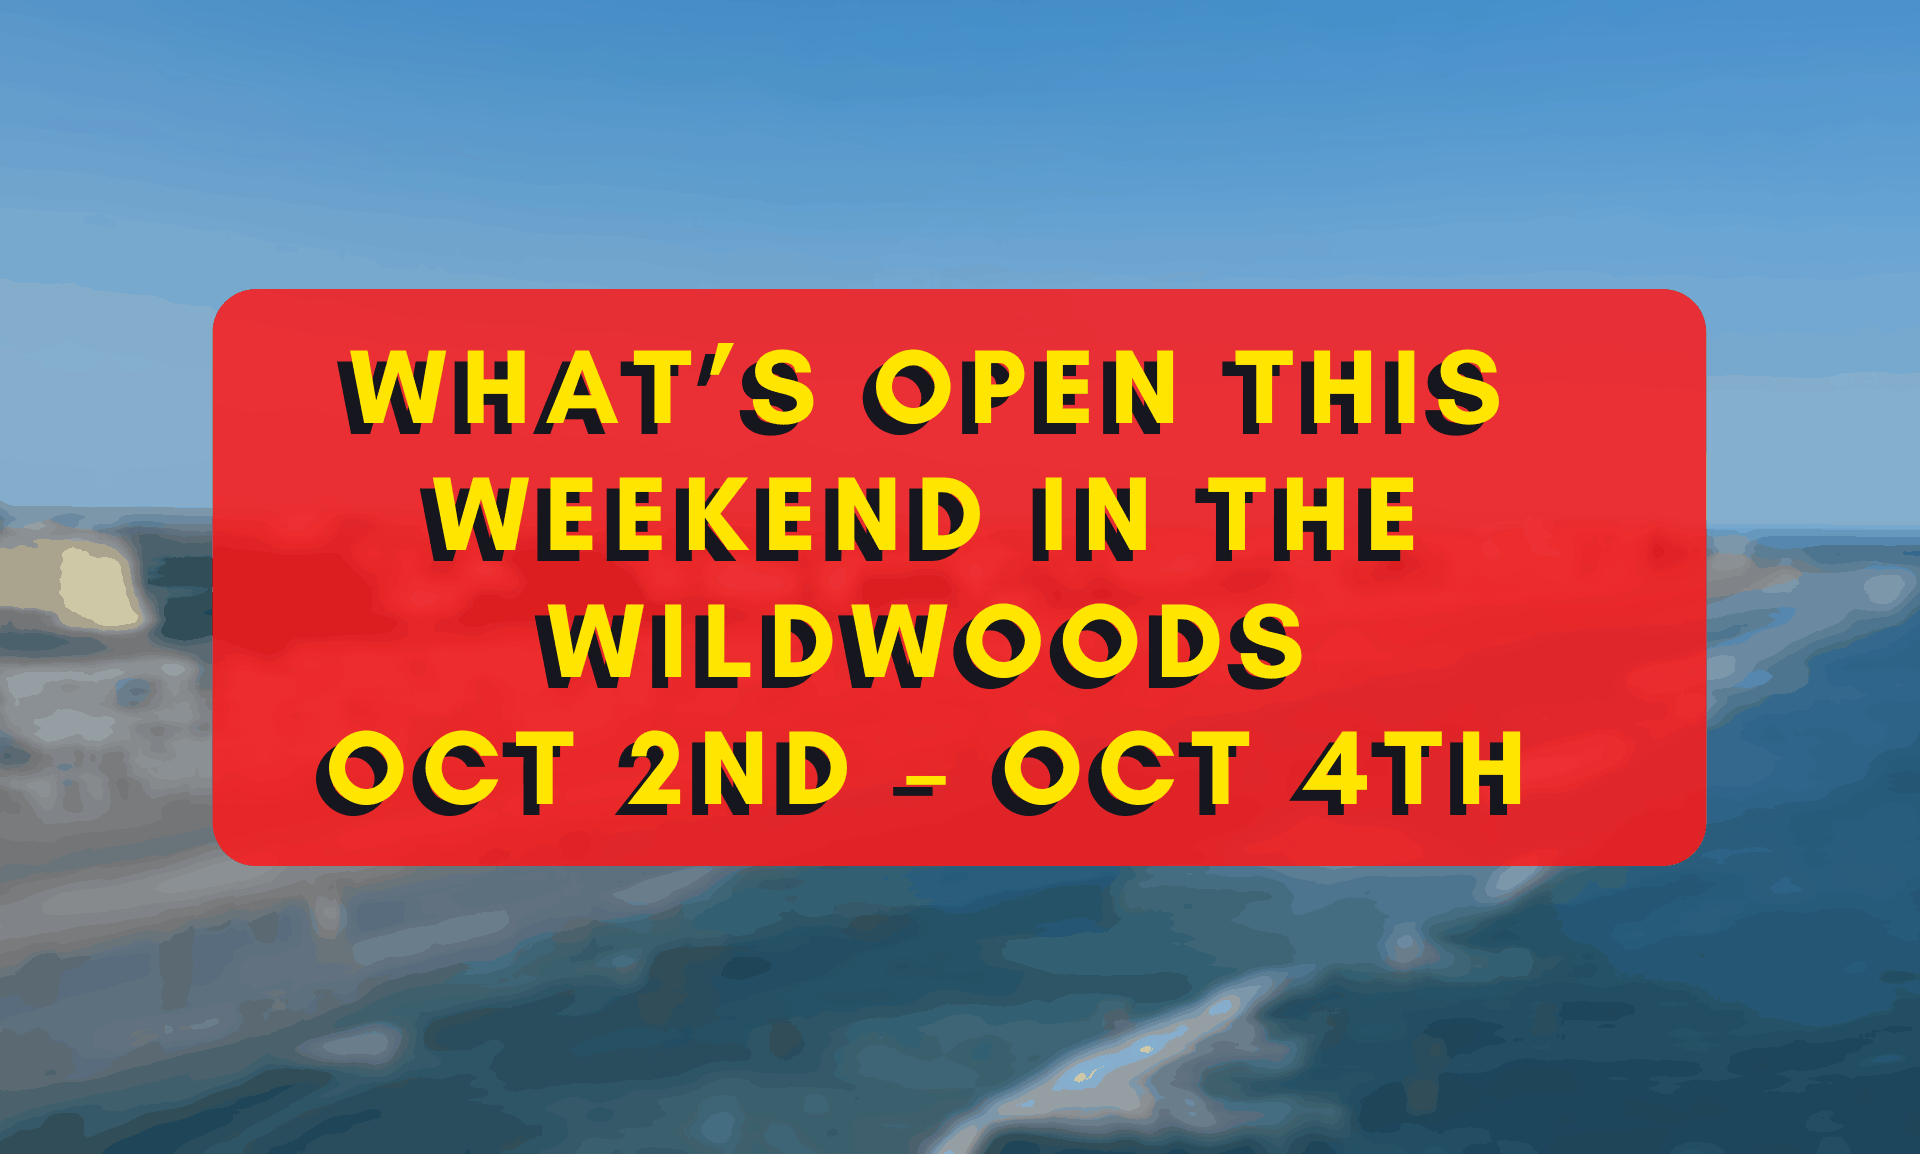 What's Open This Weekend In The Wildwoods Oct 2nd – Oct 4th